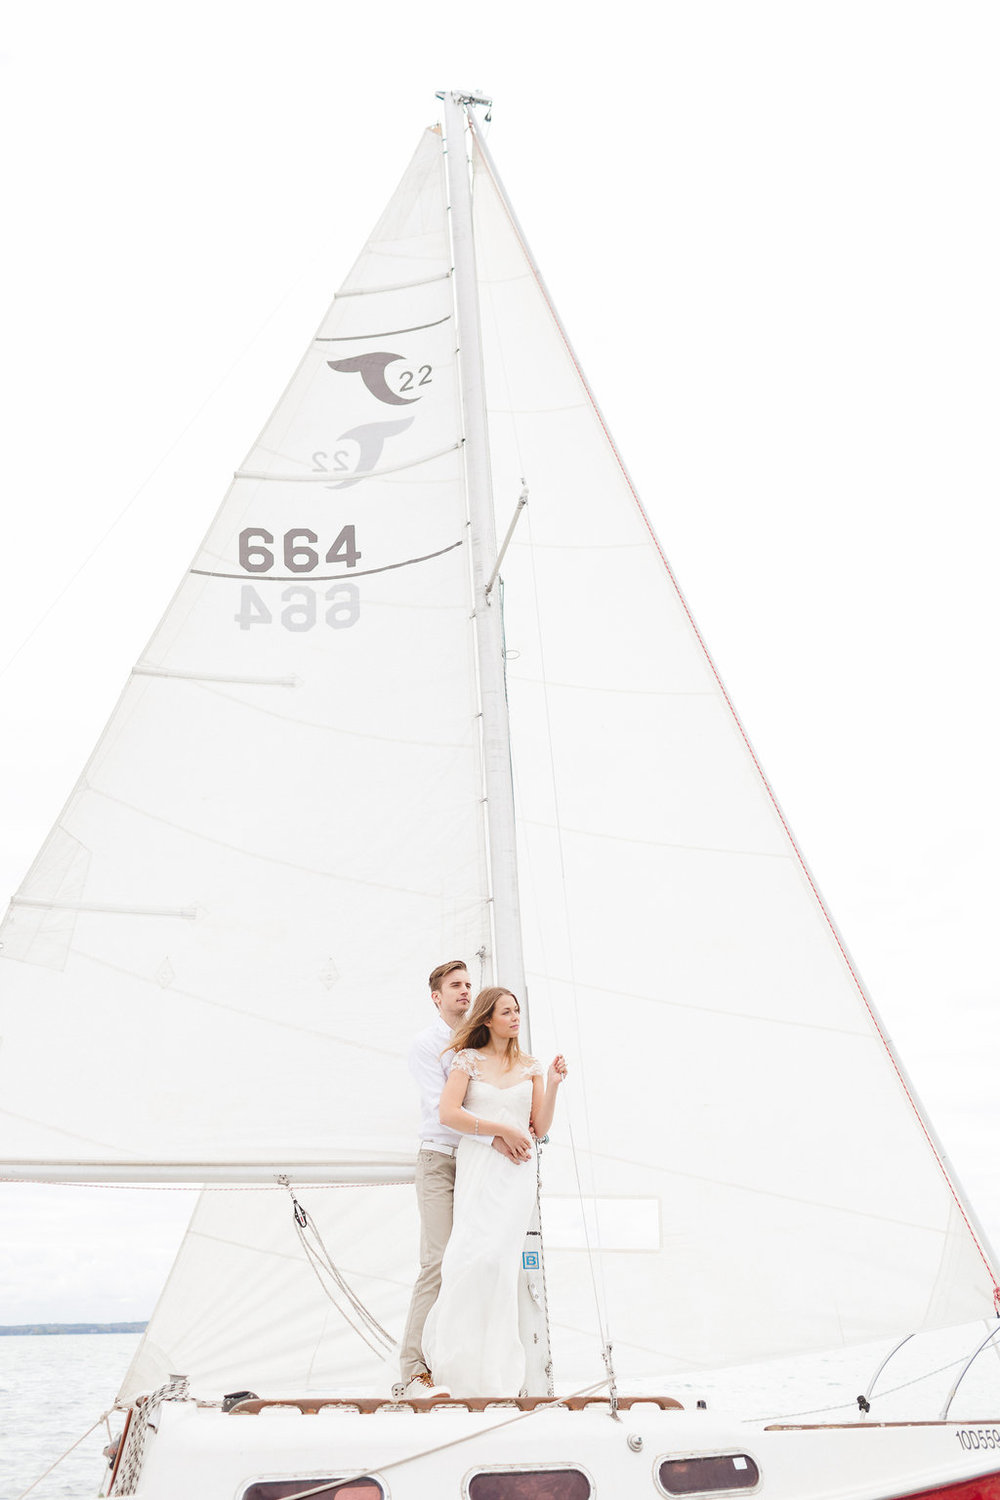 Sailboat-Inspiration-Shoot-Lisa-Renault-Photographie-Montreal-Photographer-205.jpg